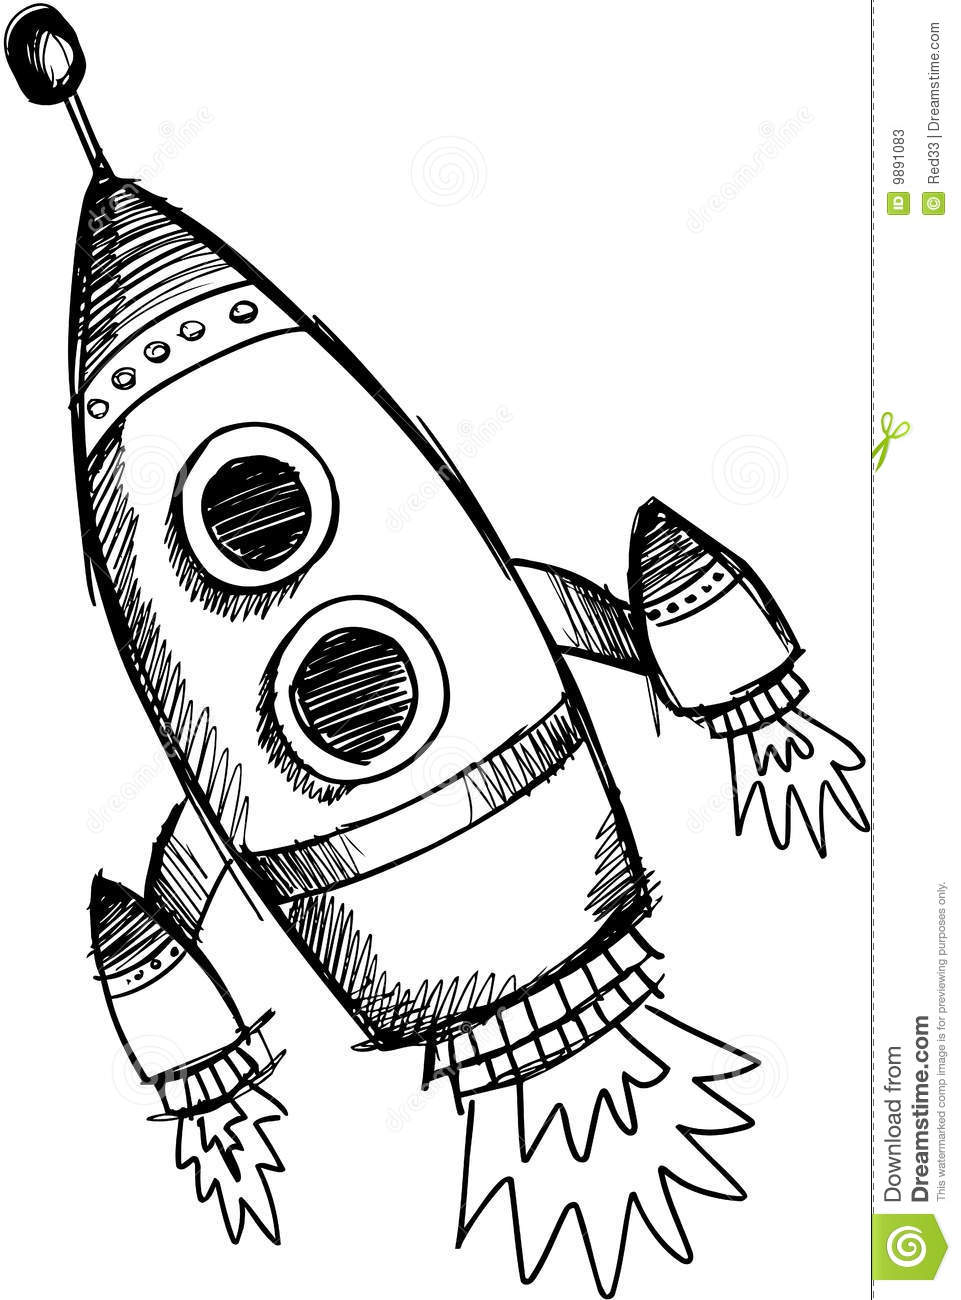 how to draw a 3d rocket